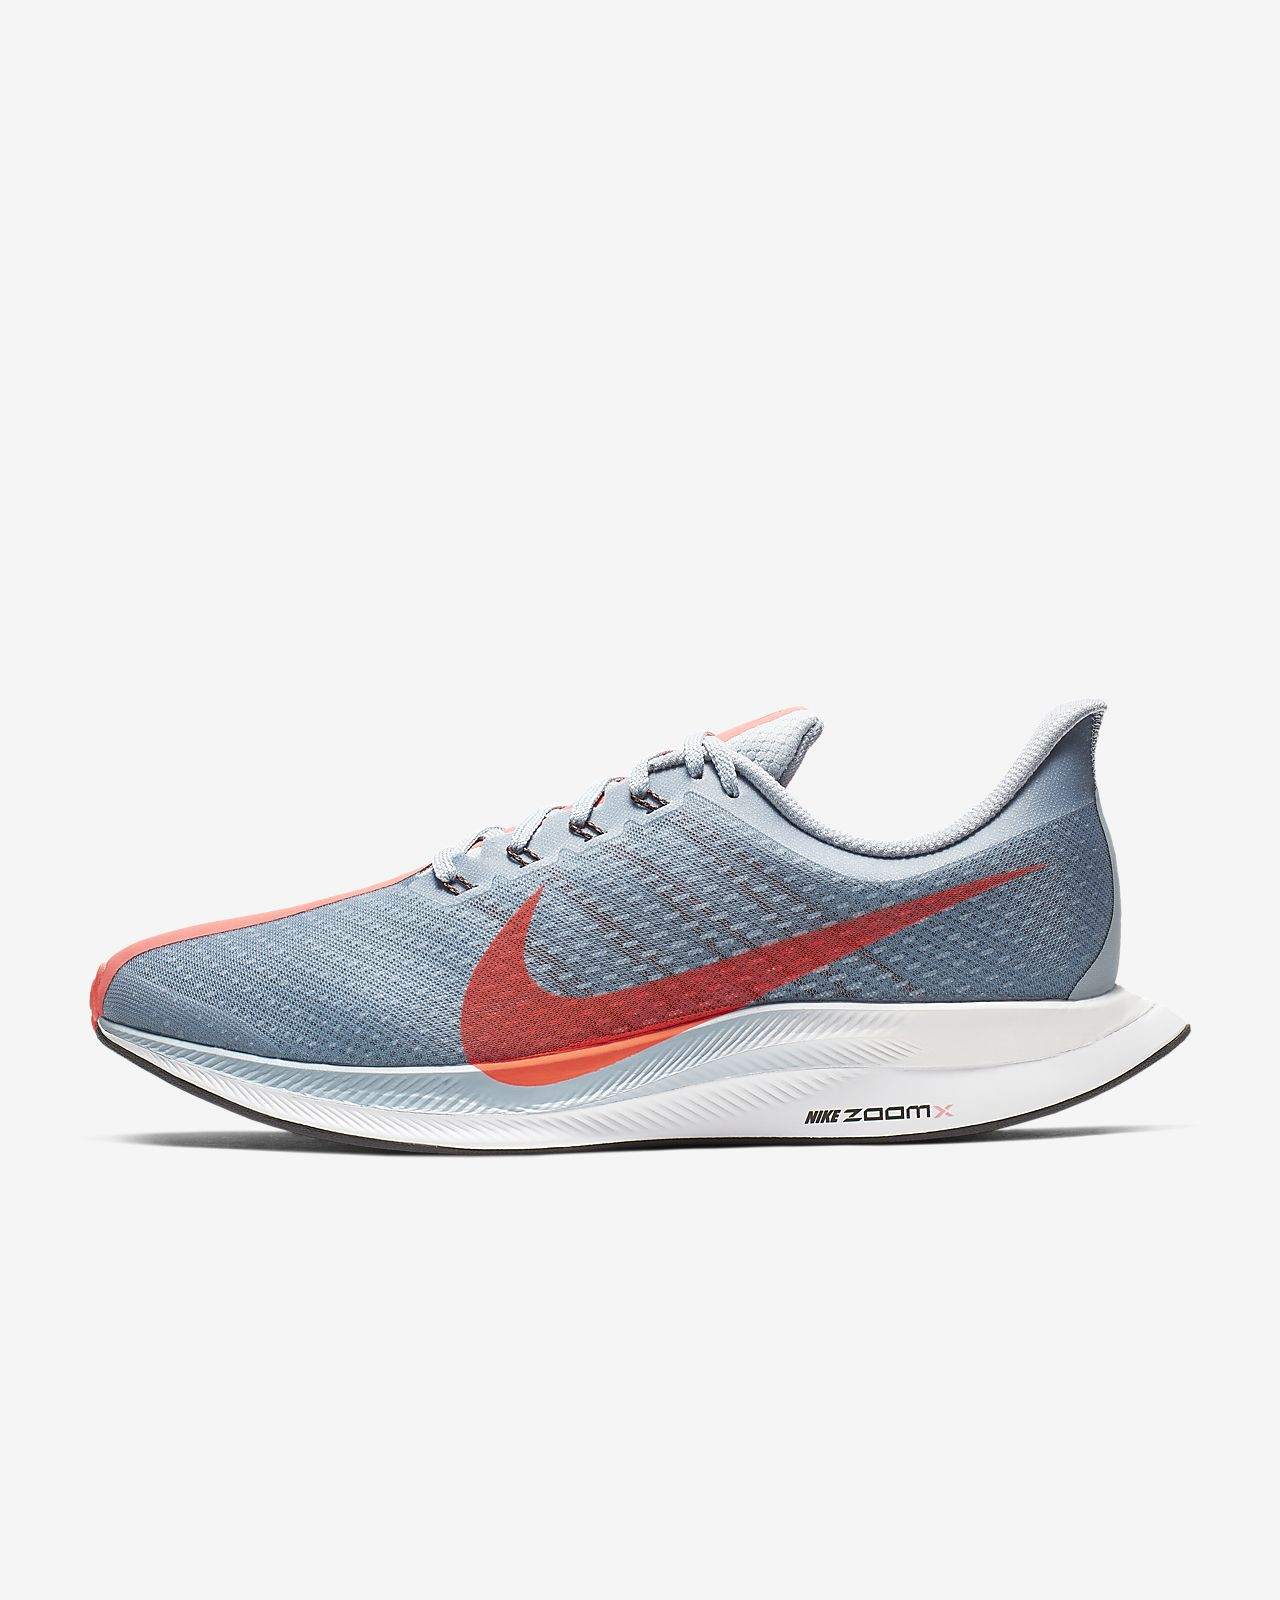 bf0d36c13c7b9c Nike Zoom Pegasus Turbo Men s Running Shoe. Nike.com GB